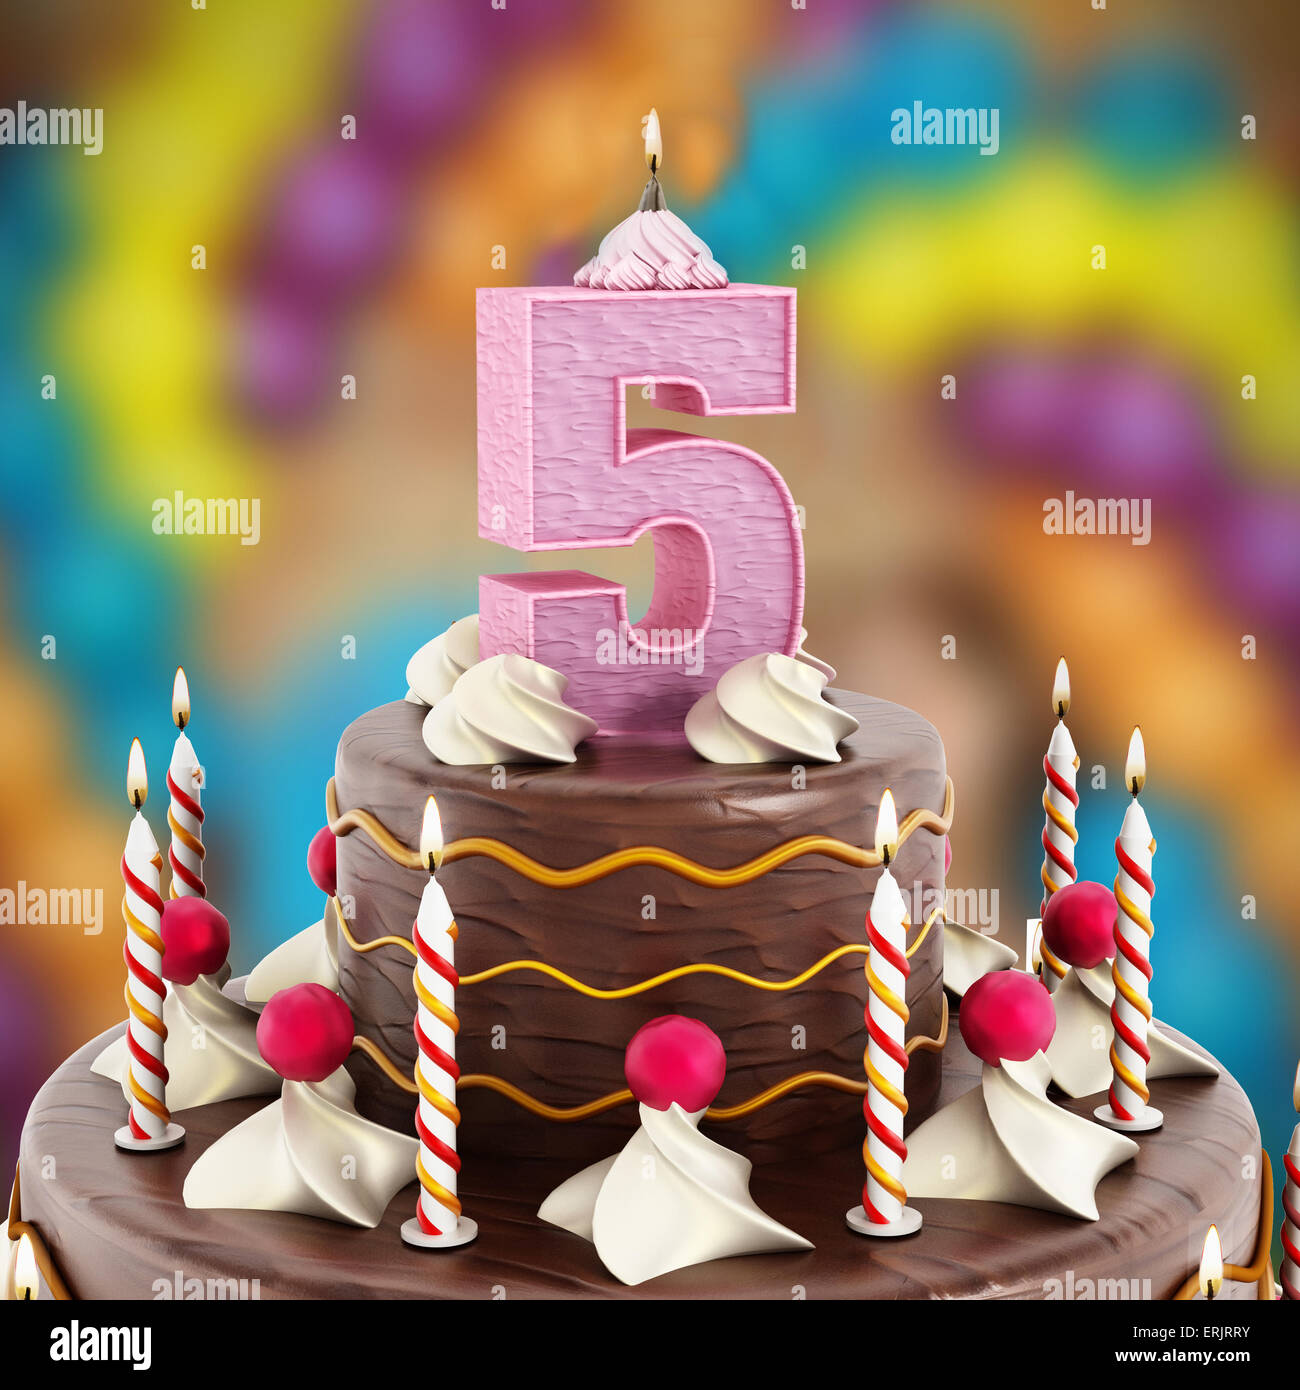 Birthday Cake With Number 5 Lit Candle Stock Photo 83392399 Alamy